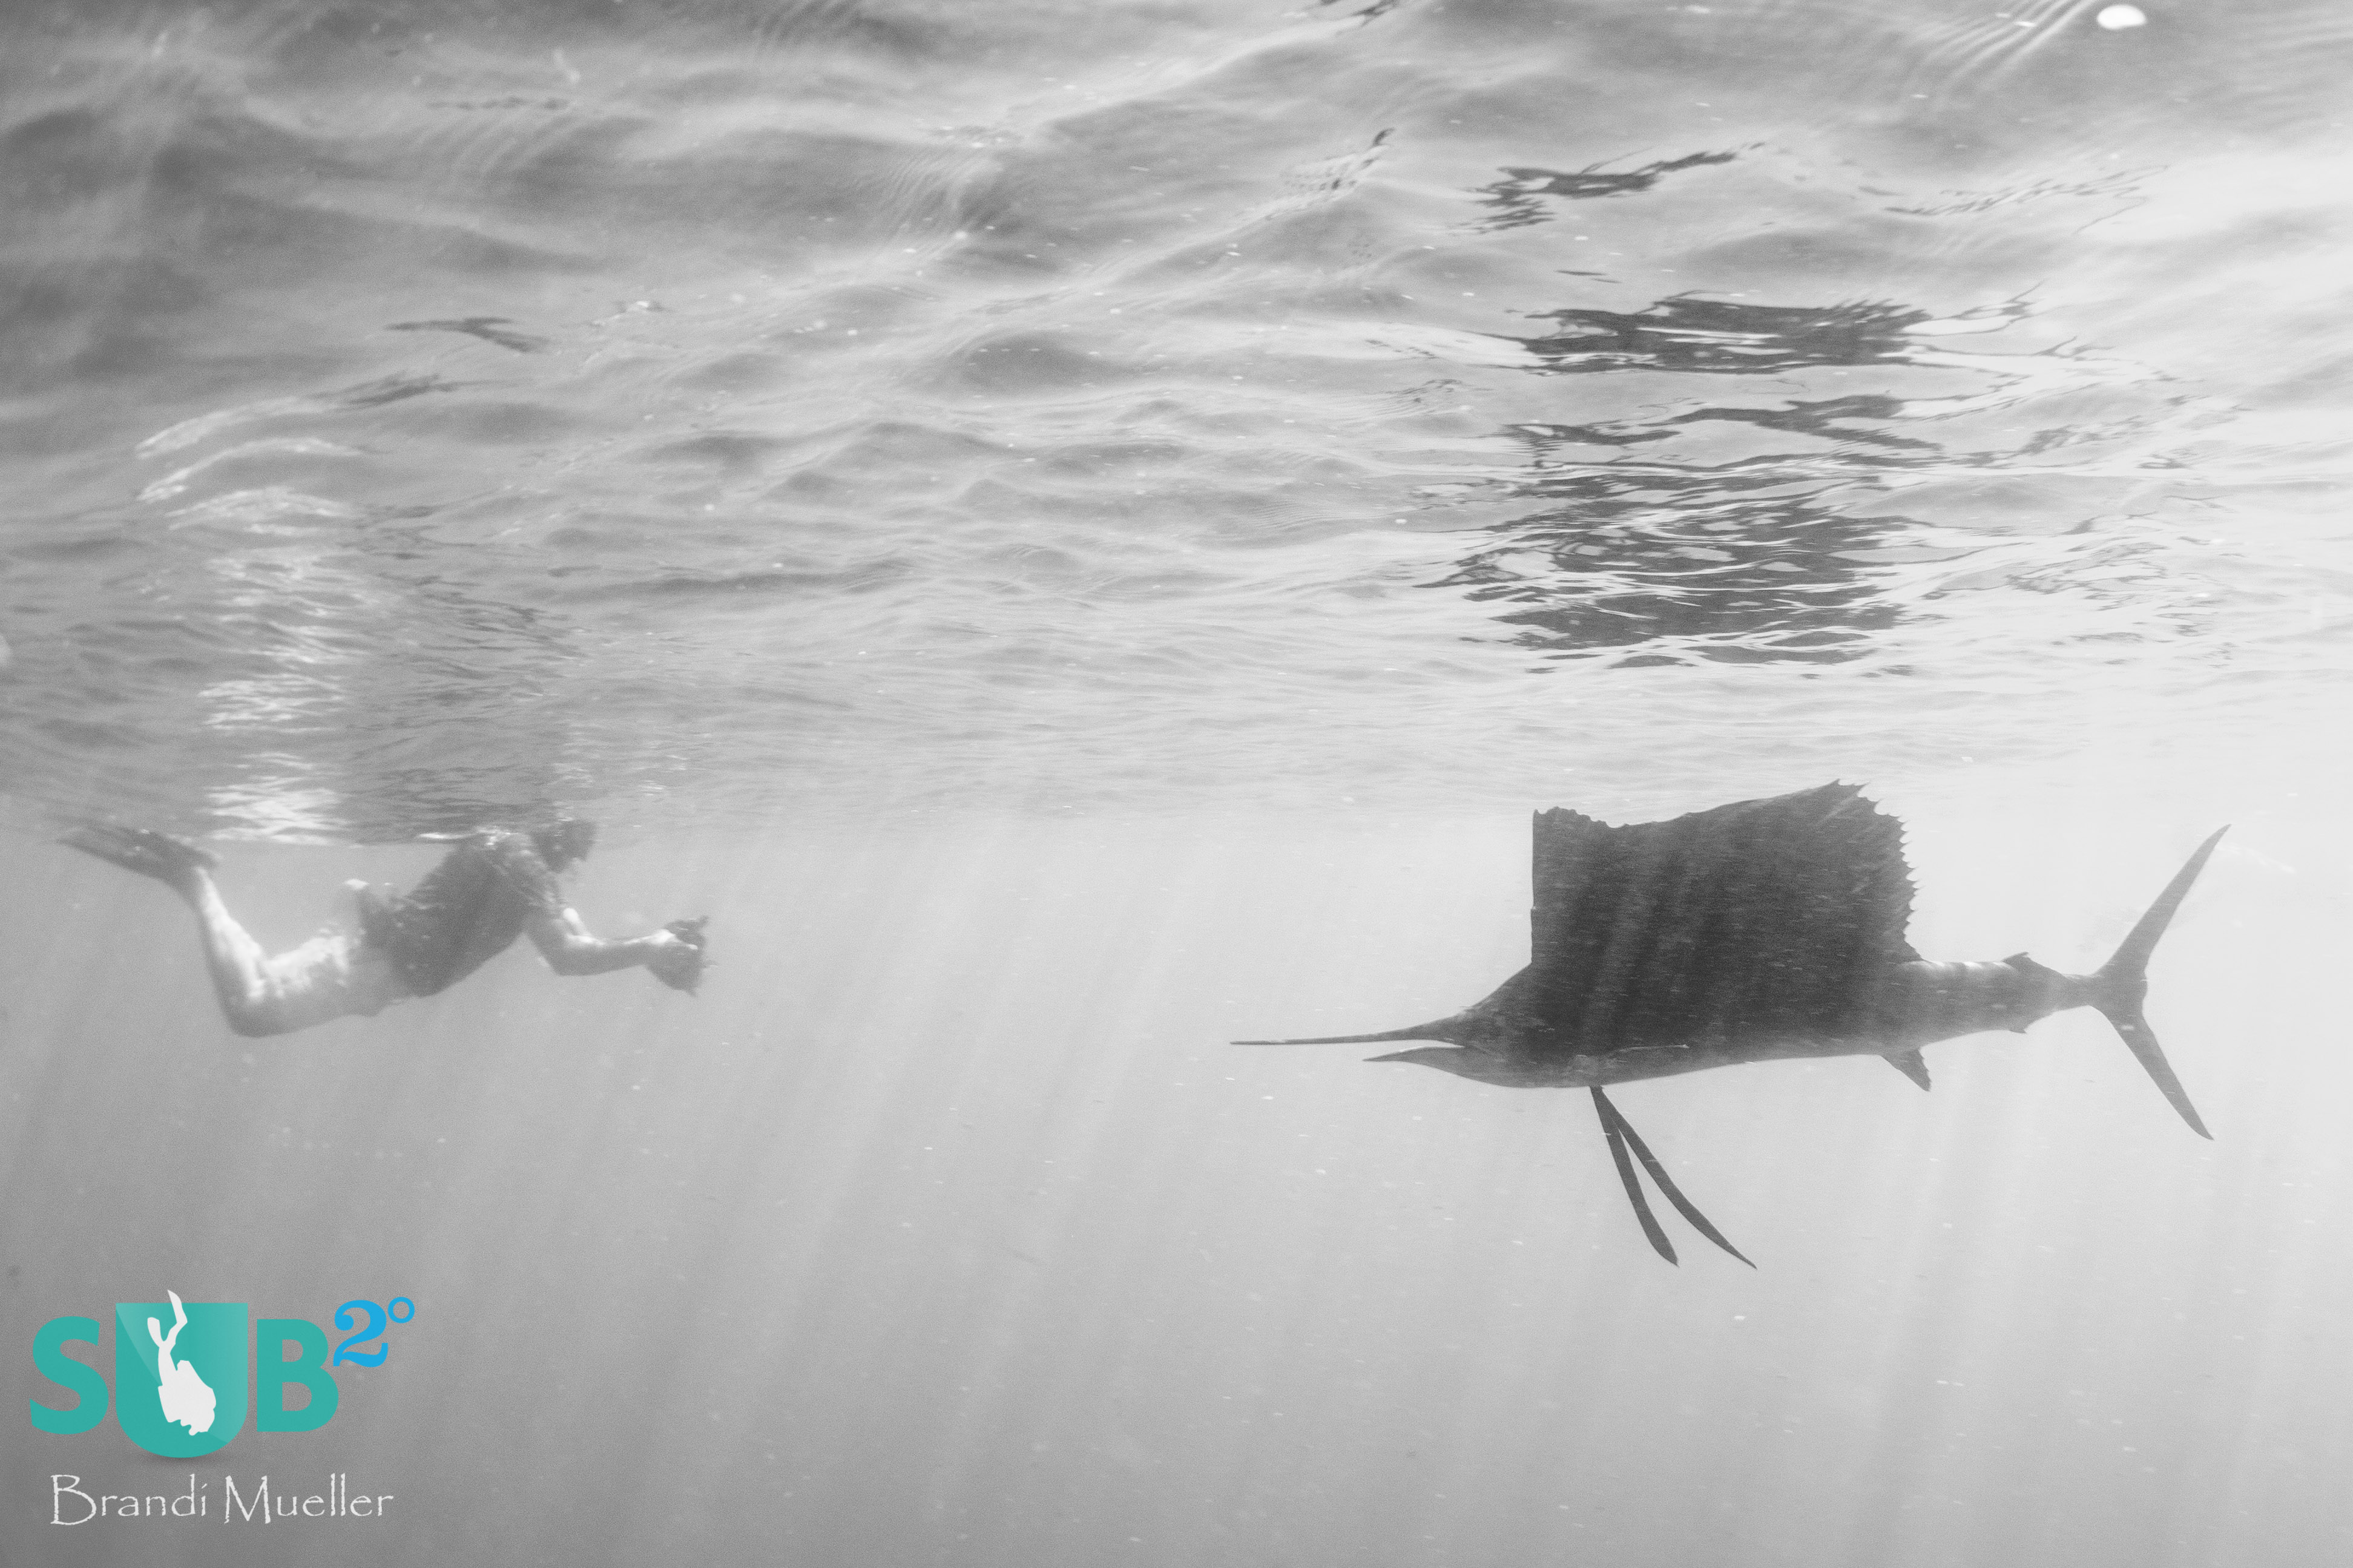 A sailfish, paying no attention to the snorkeler, continues to feed on sardines.